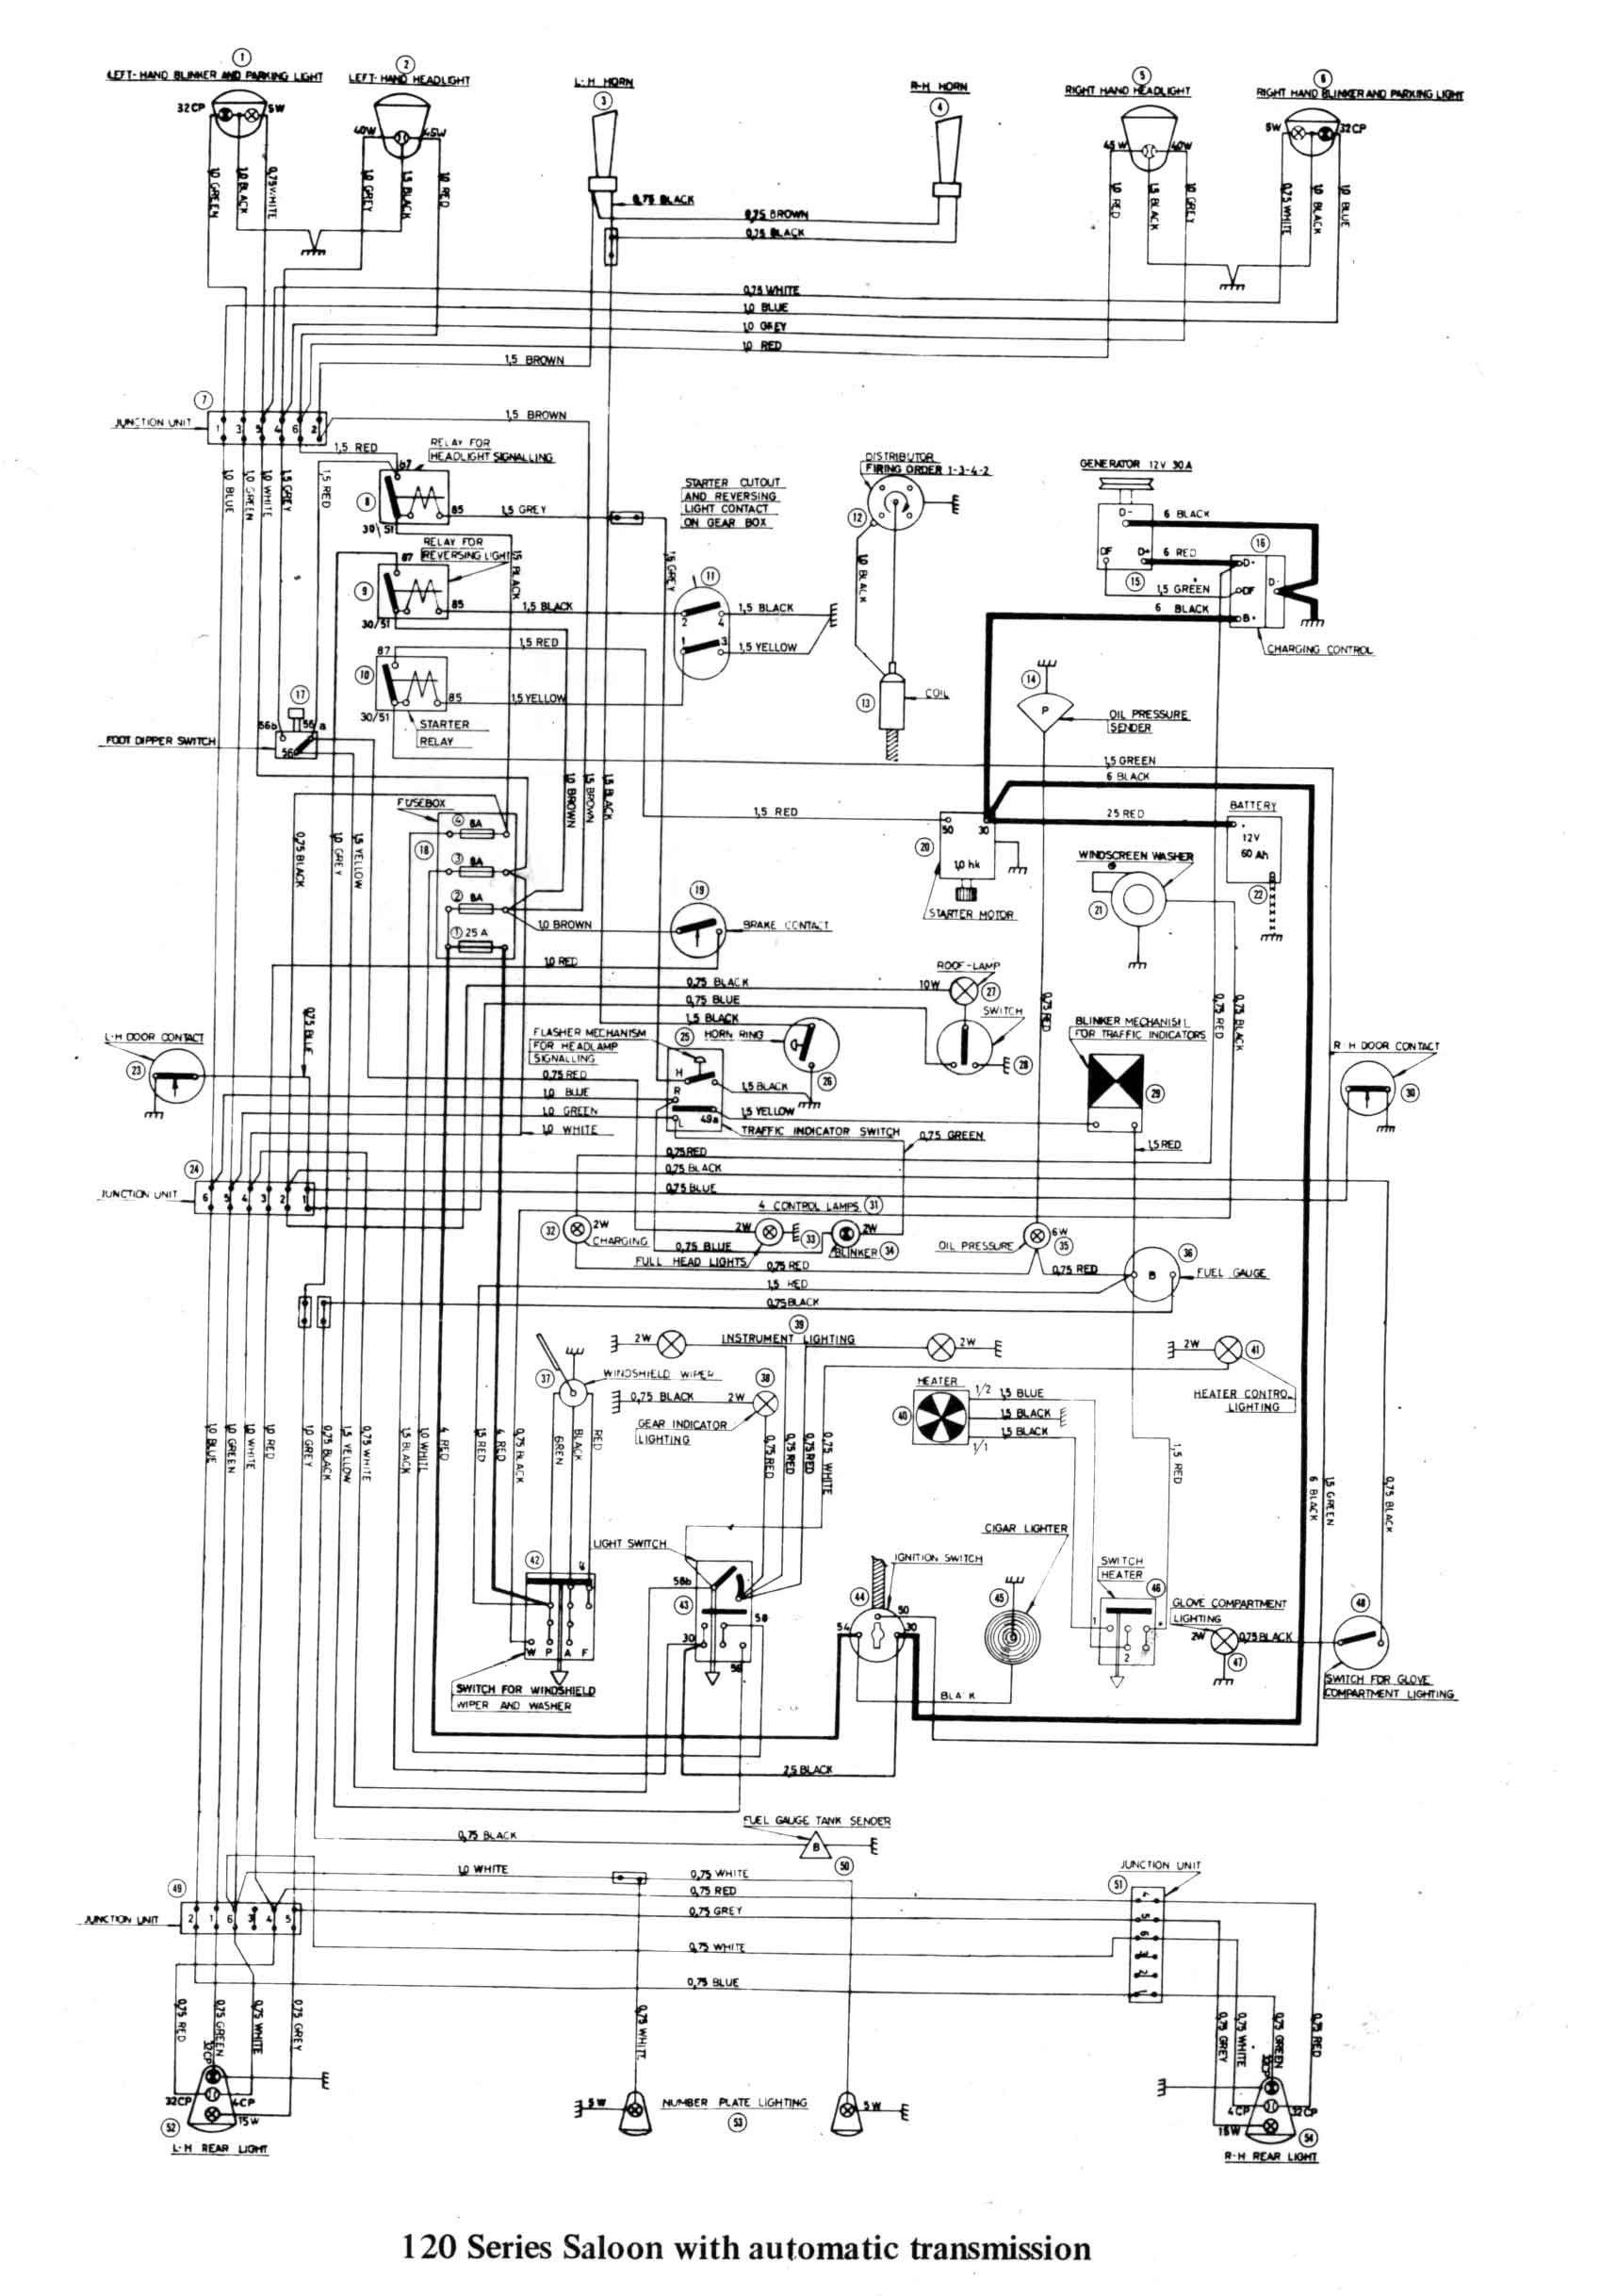 2008 Volvo S80 Wiring Diagram Best Wiring Diagrams Nation Nation Ekoegur Es